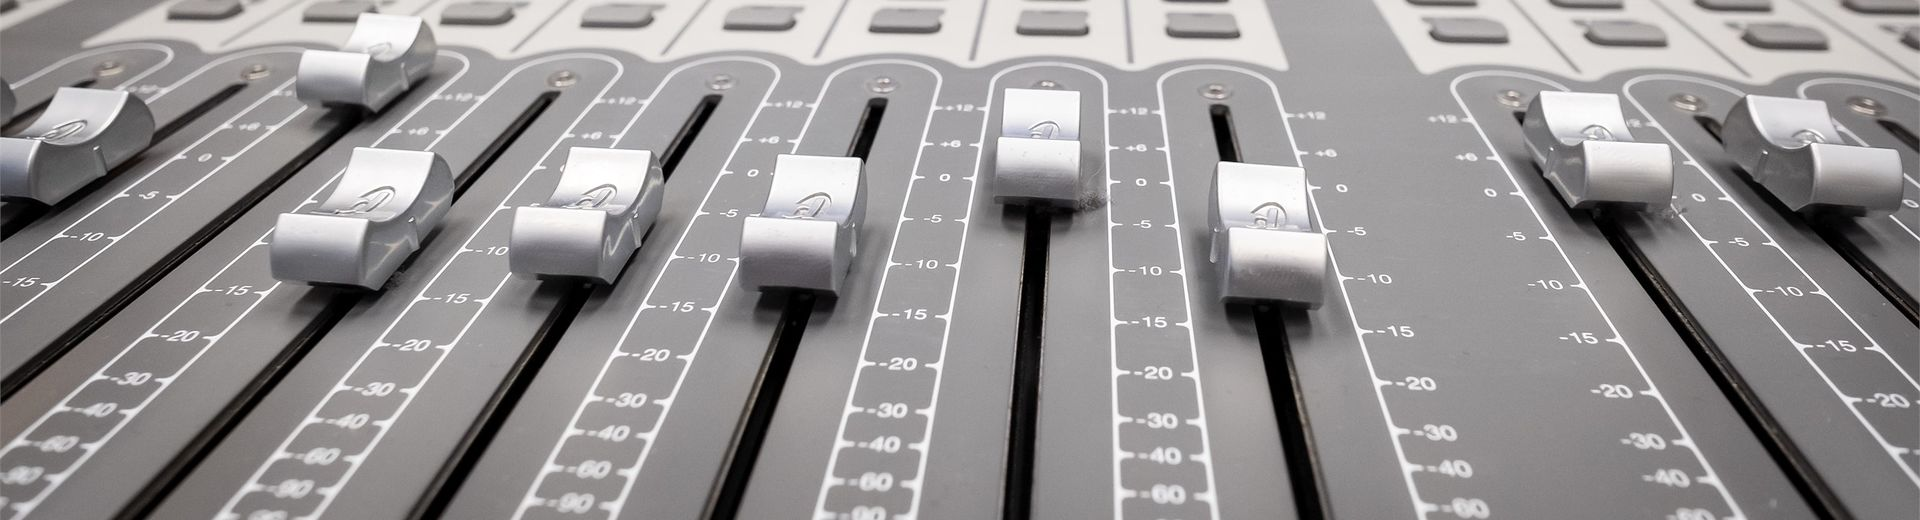 Music mixing control panel.